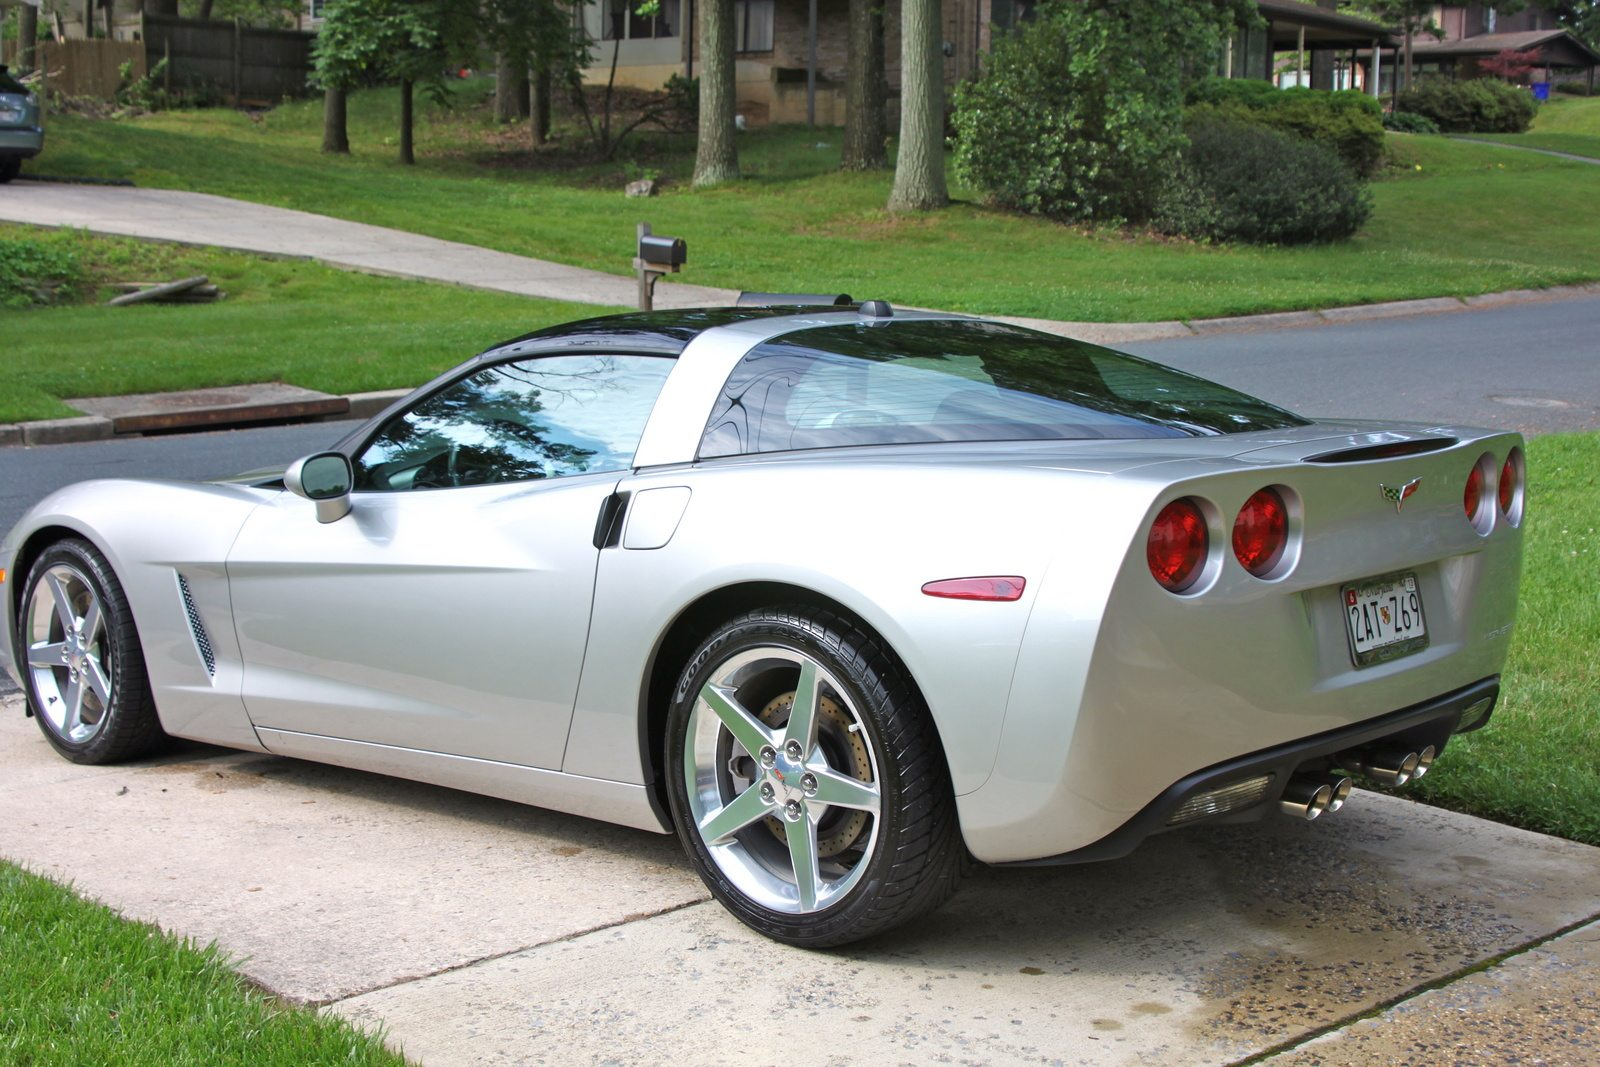 2005 c6 corvette image gallery pictures. Black Bedroom Furniture Sets. Home Design Ideas